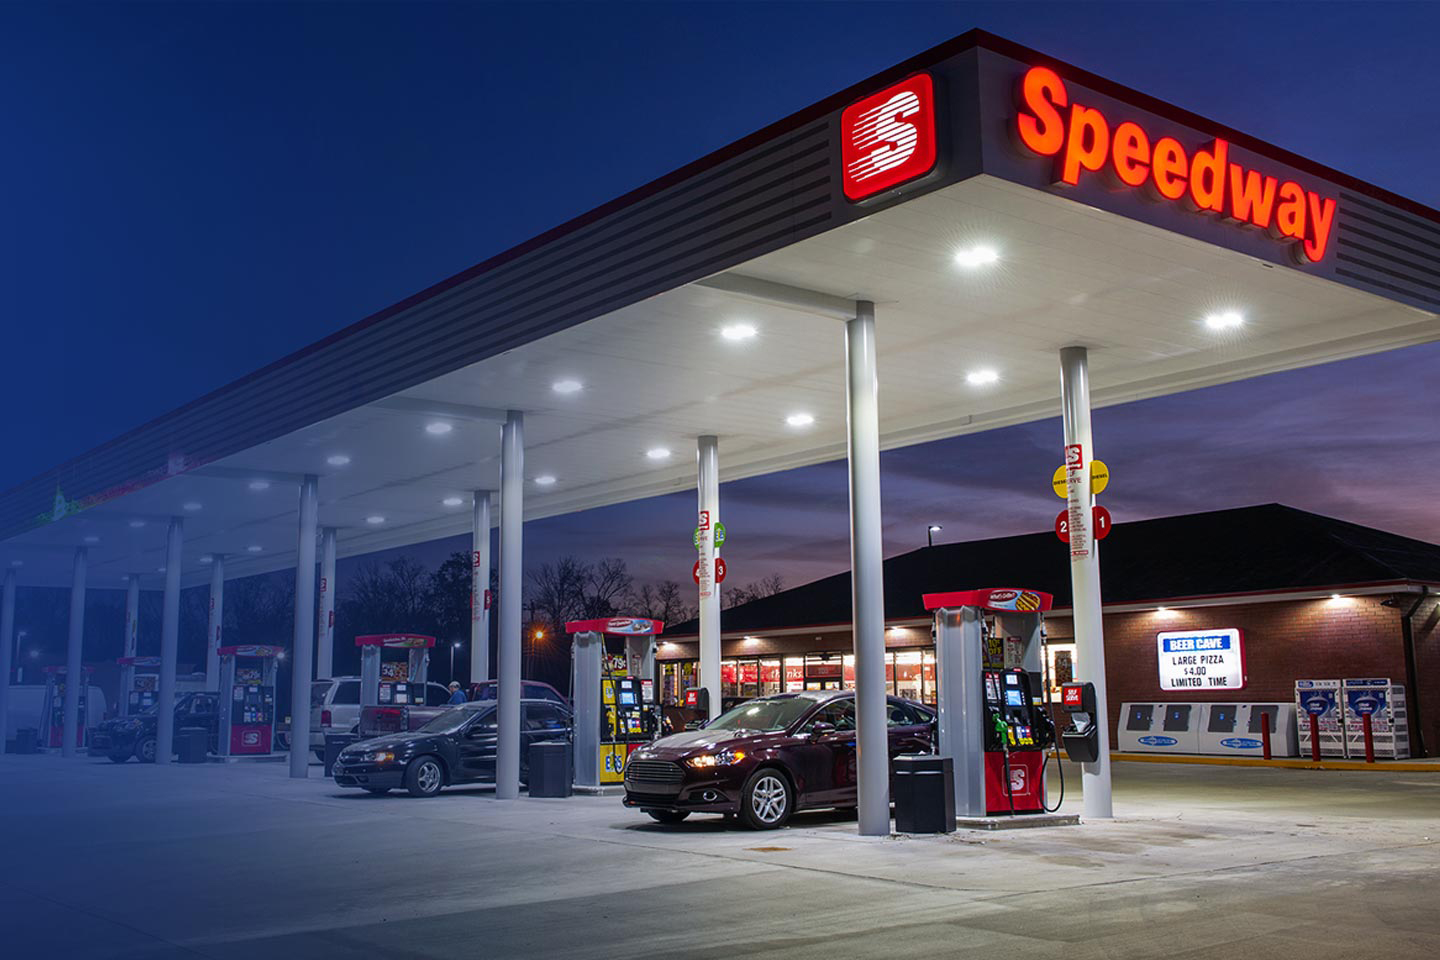 Howdy's gas stations are now turned into Speedway convenience stores.